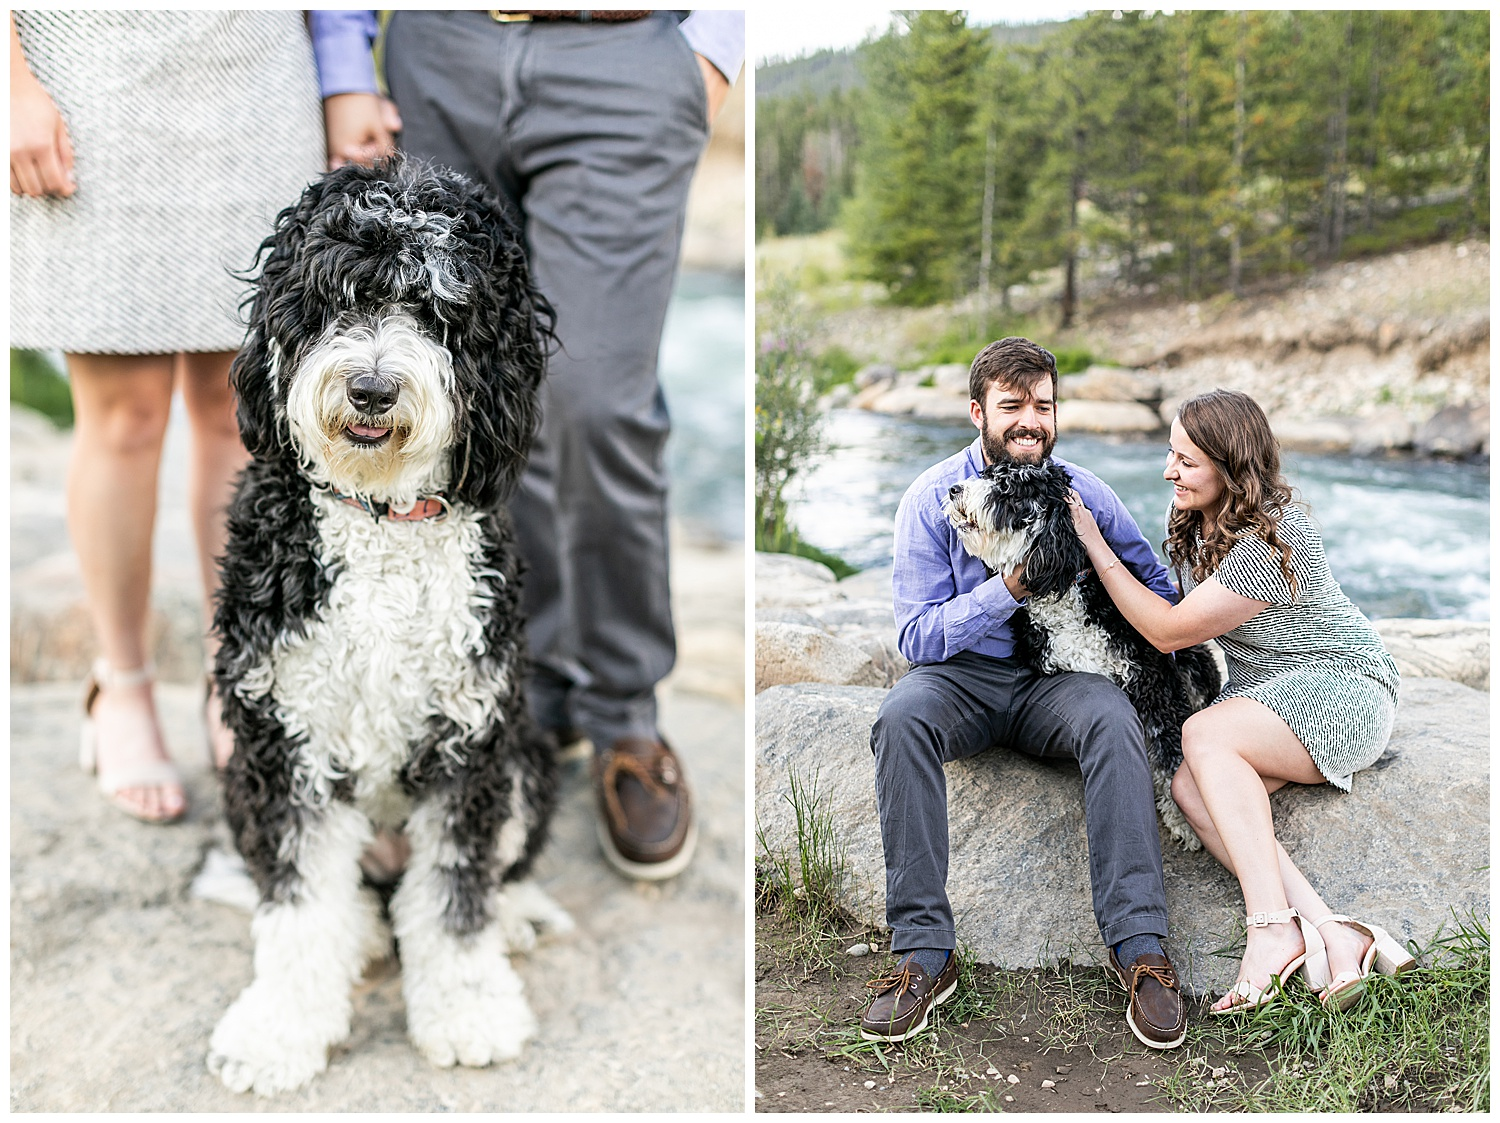 Molly + Ryan Breckenridge Destination Engagement Session Living Radiant Photography_0012.jpg